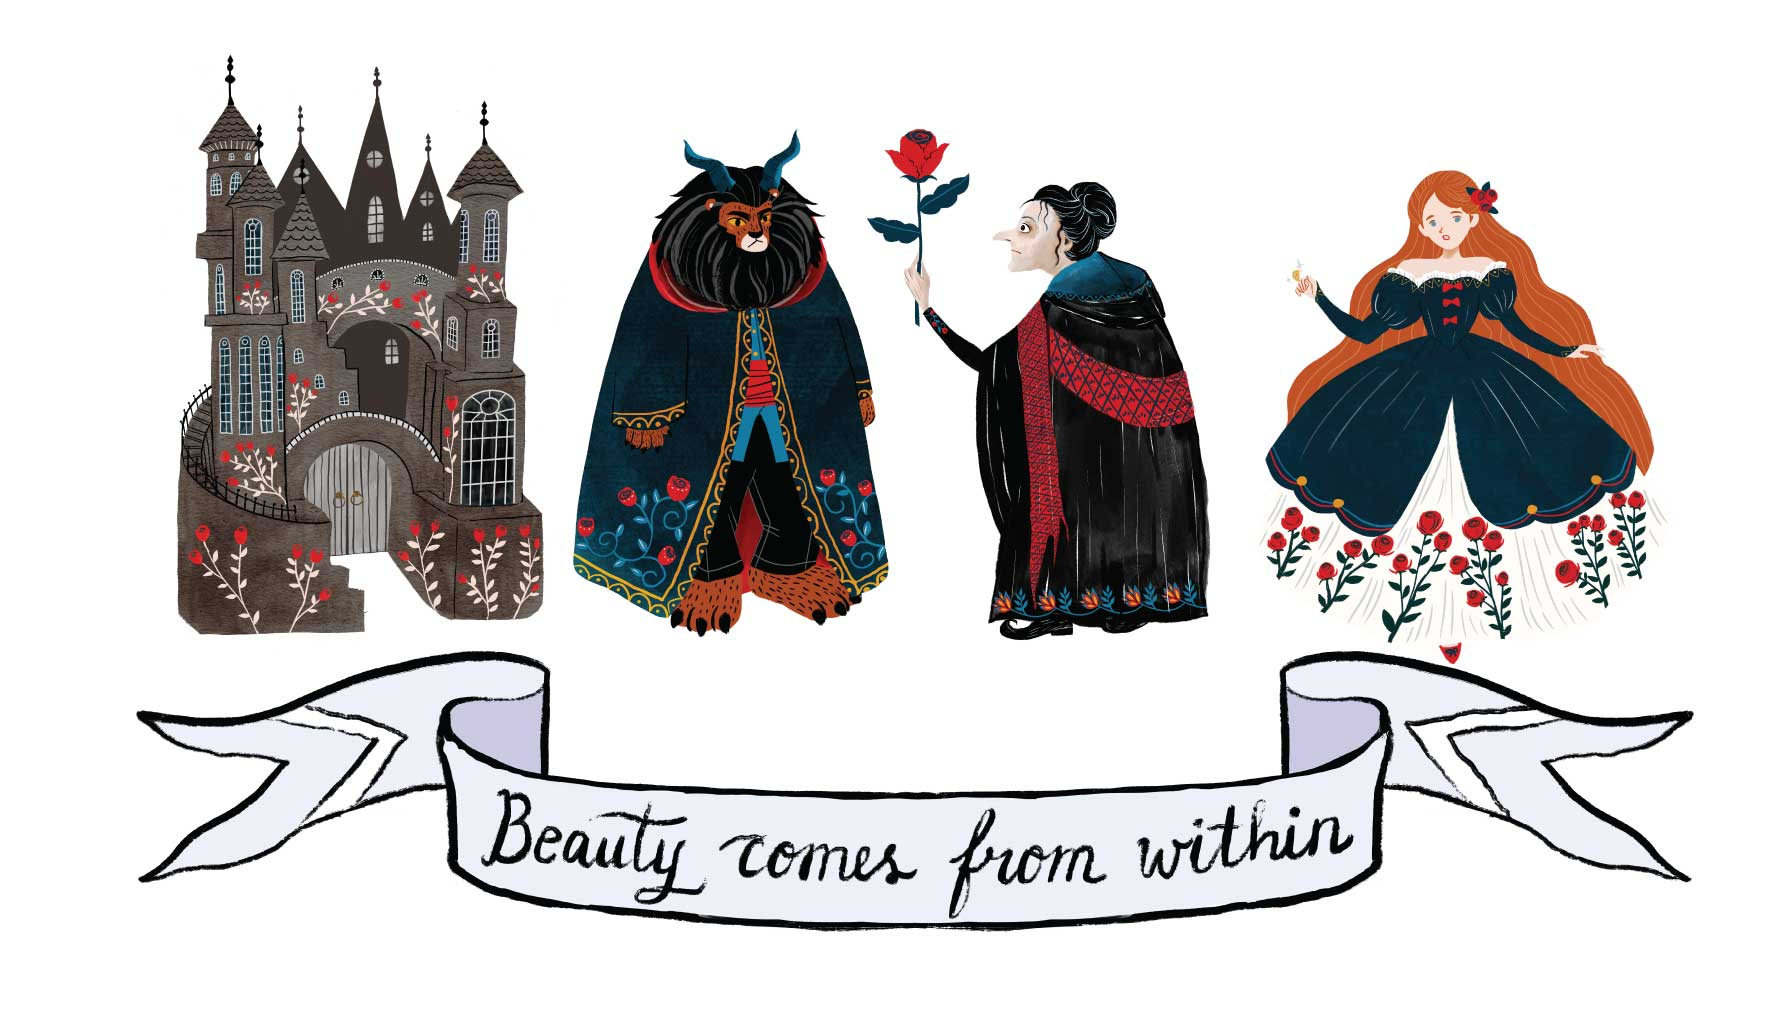 Blog#2: Designing Beauty and The Beast Theme